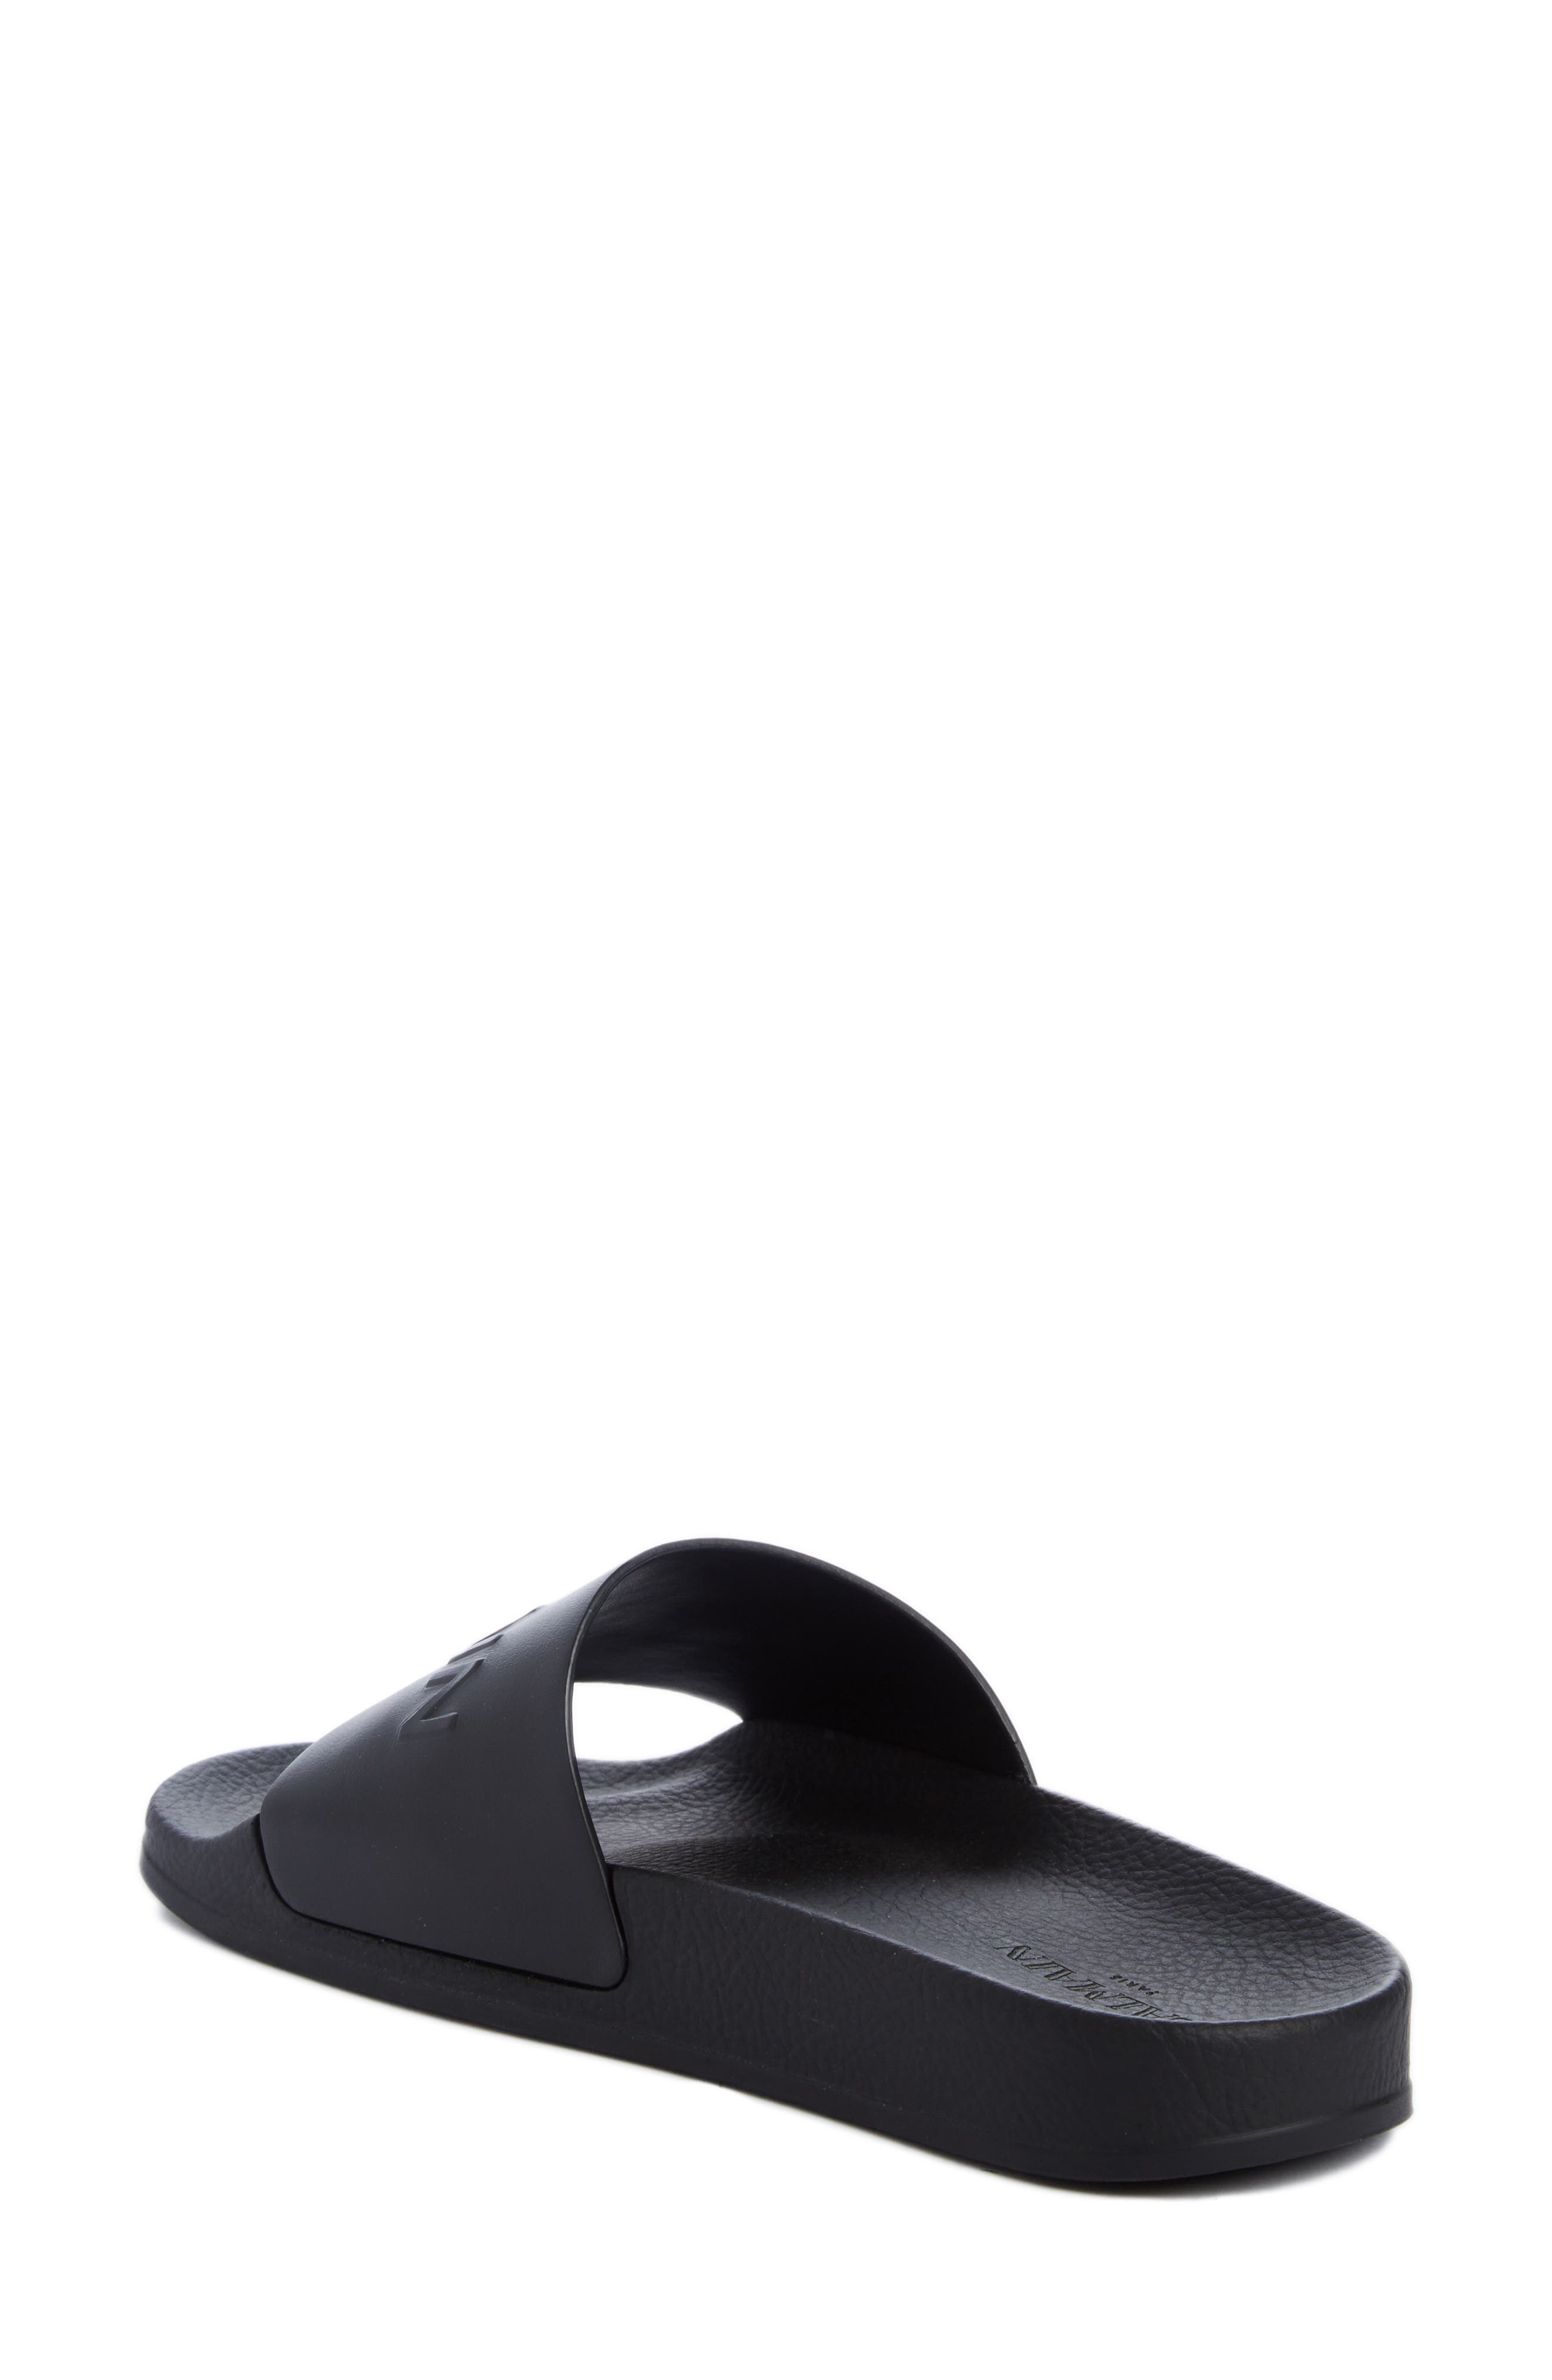 Calypso Logo Strap Slide Sandal,                             Alternate thumbnail 2, color,                             BLACK